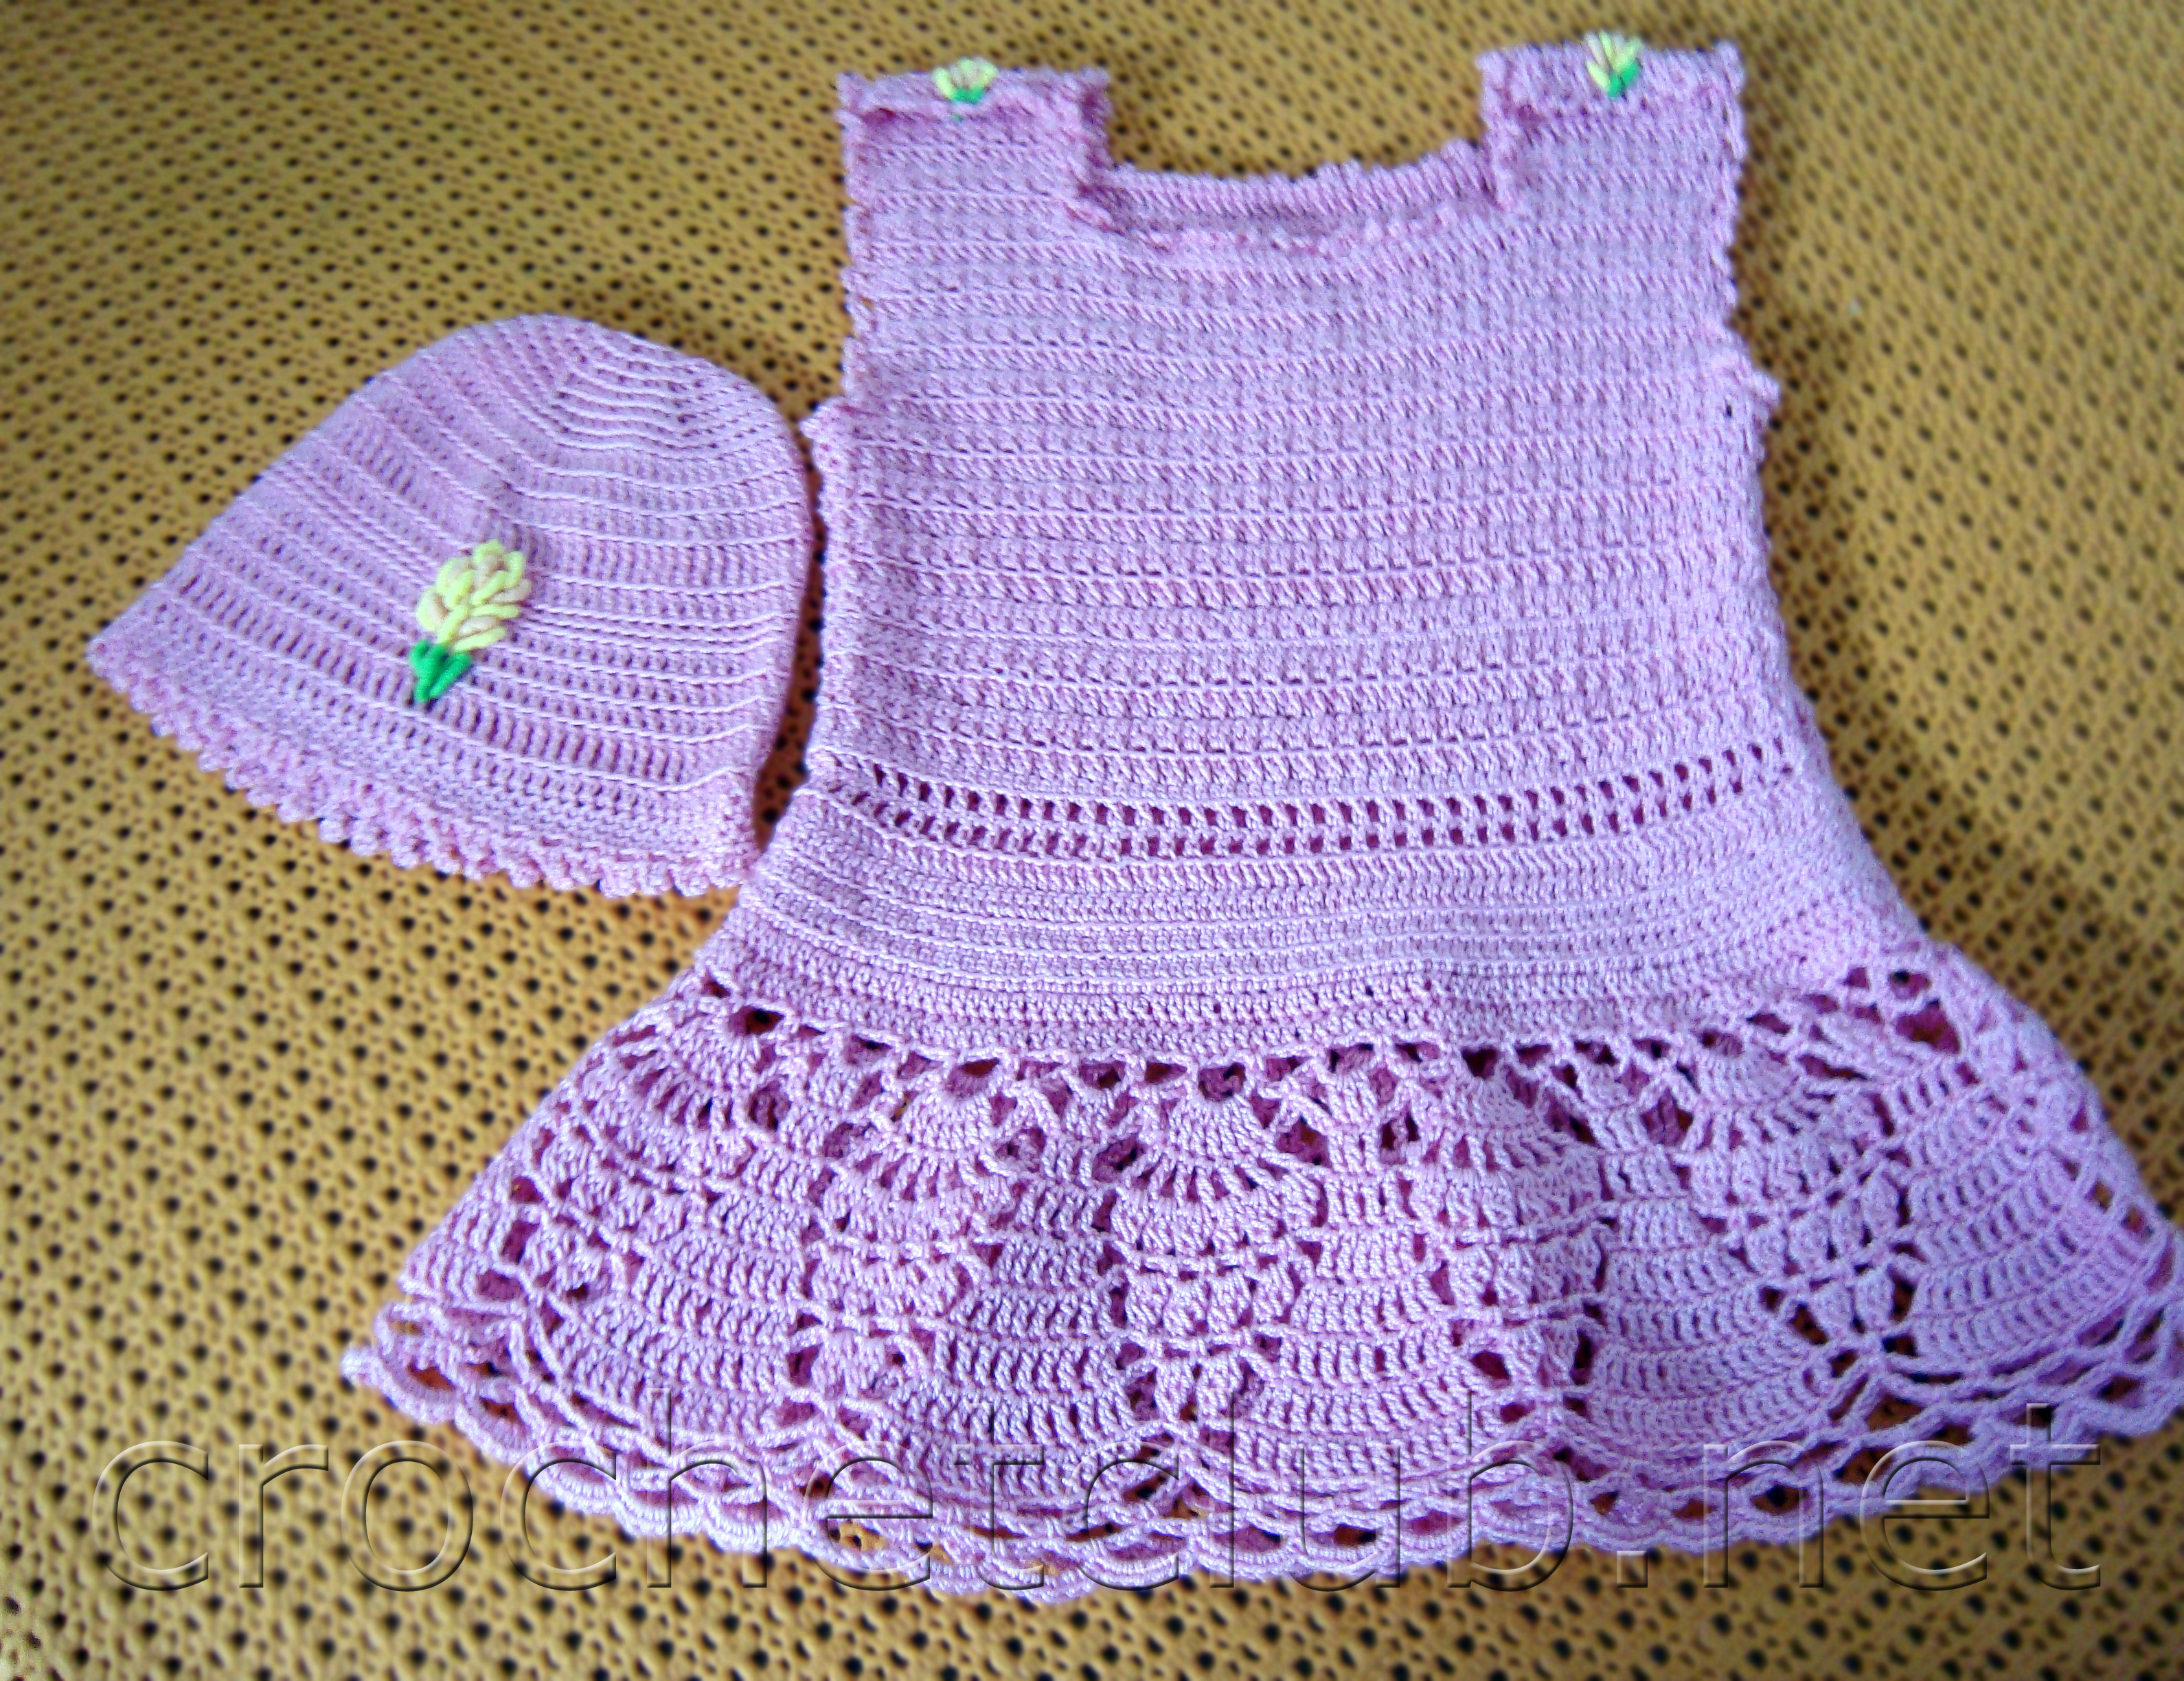 Knitting for kids crochet hook scheme.